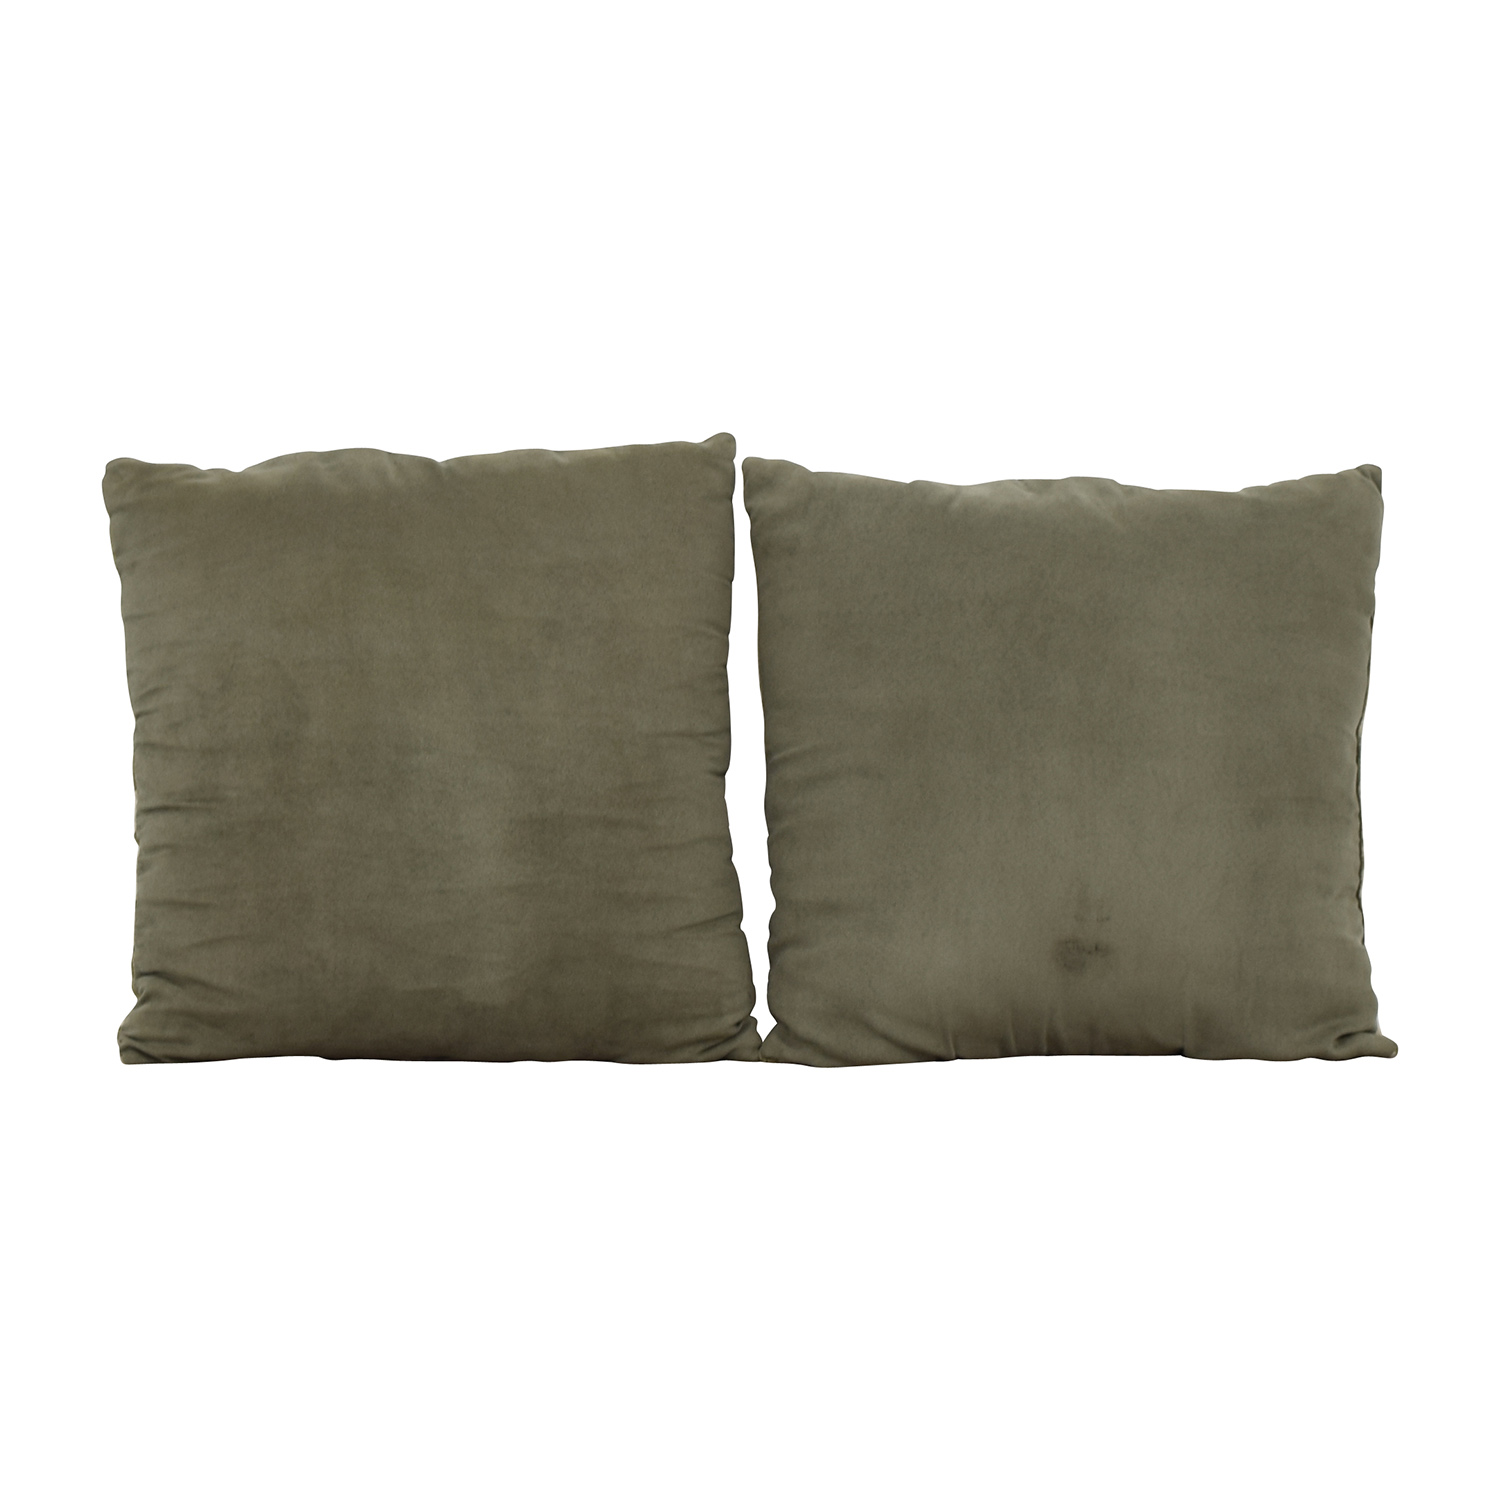 shop Multi-colored Square Design Tan and Green Toss Pillows